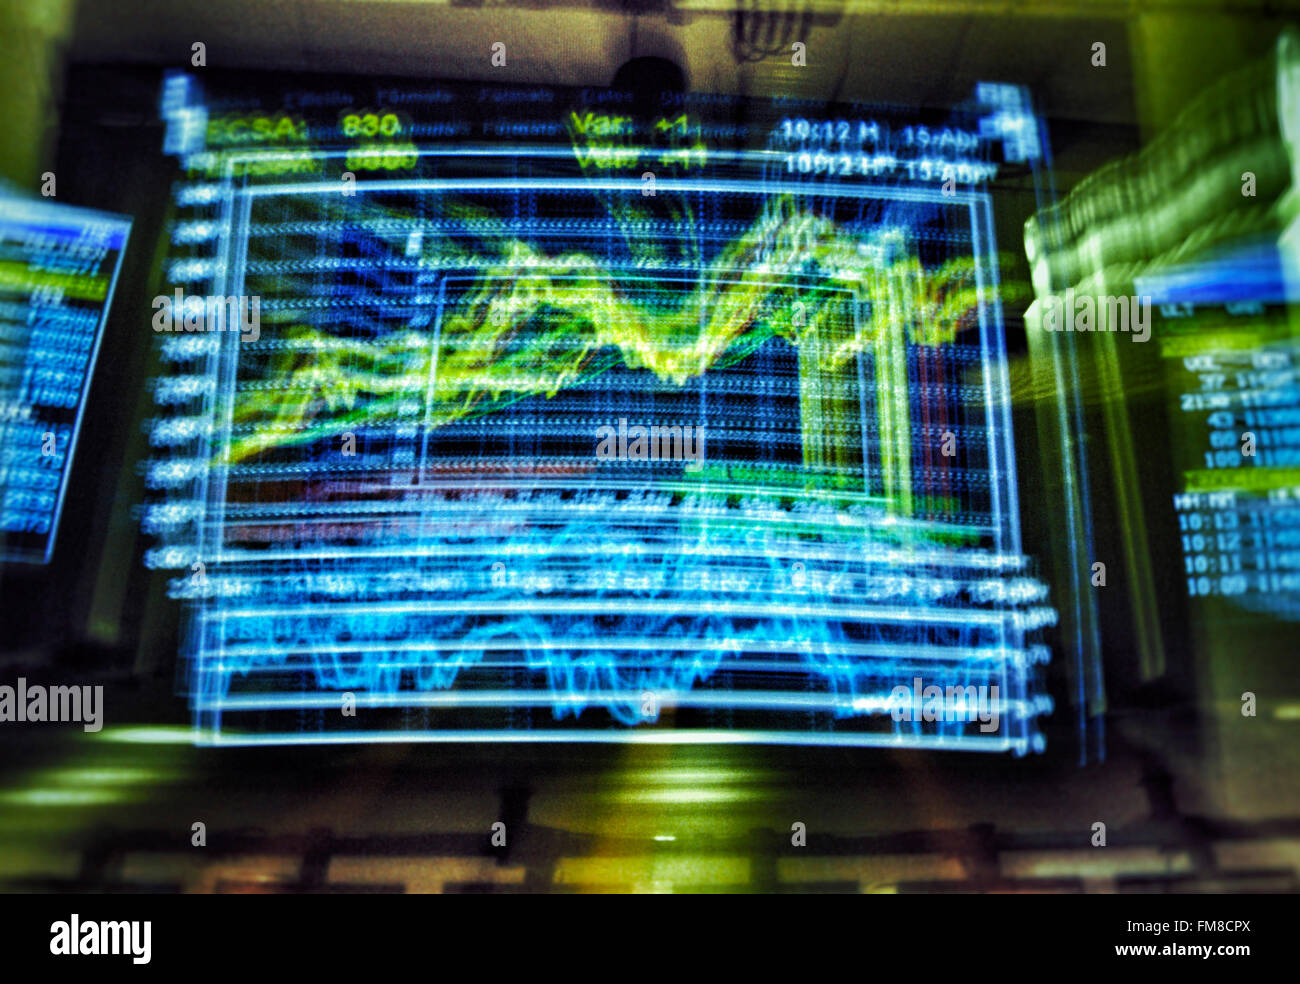 Screen showing charts at Stock exchange market - Stock Image